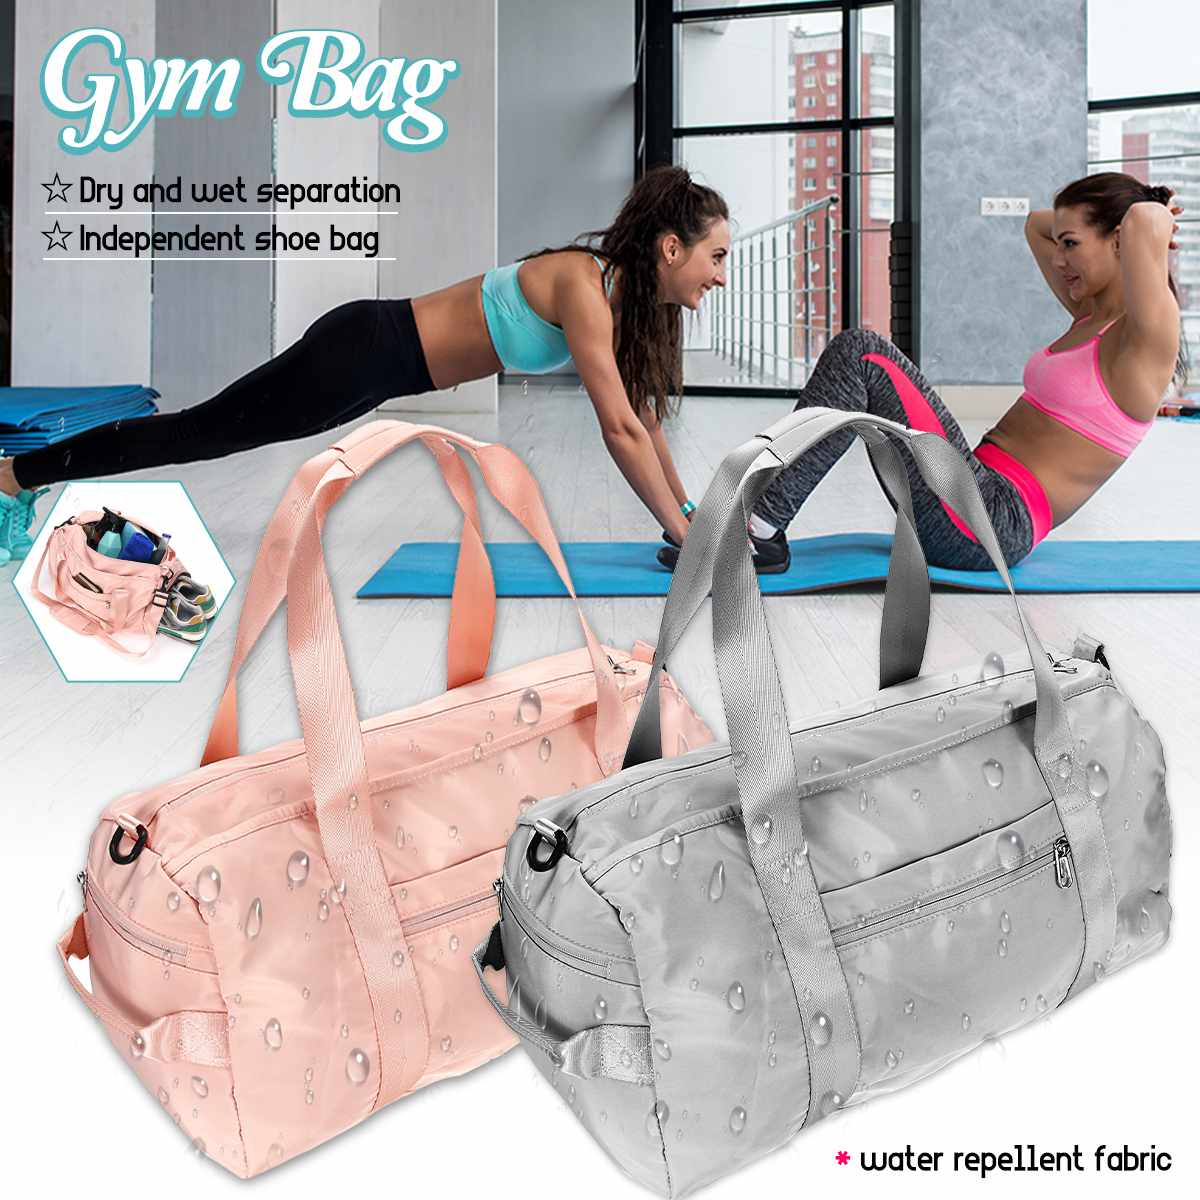 Outdoor Gym Bag Sports Backpack Dry Wet Gymtas Yoga Bolsa Fitness Luggage With Shoes Compartment Outdoor Sports Swimming Women